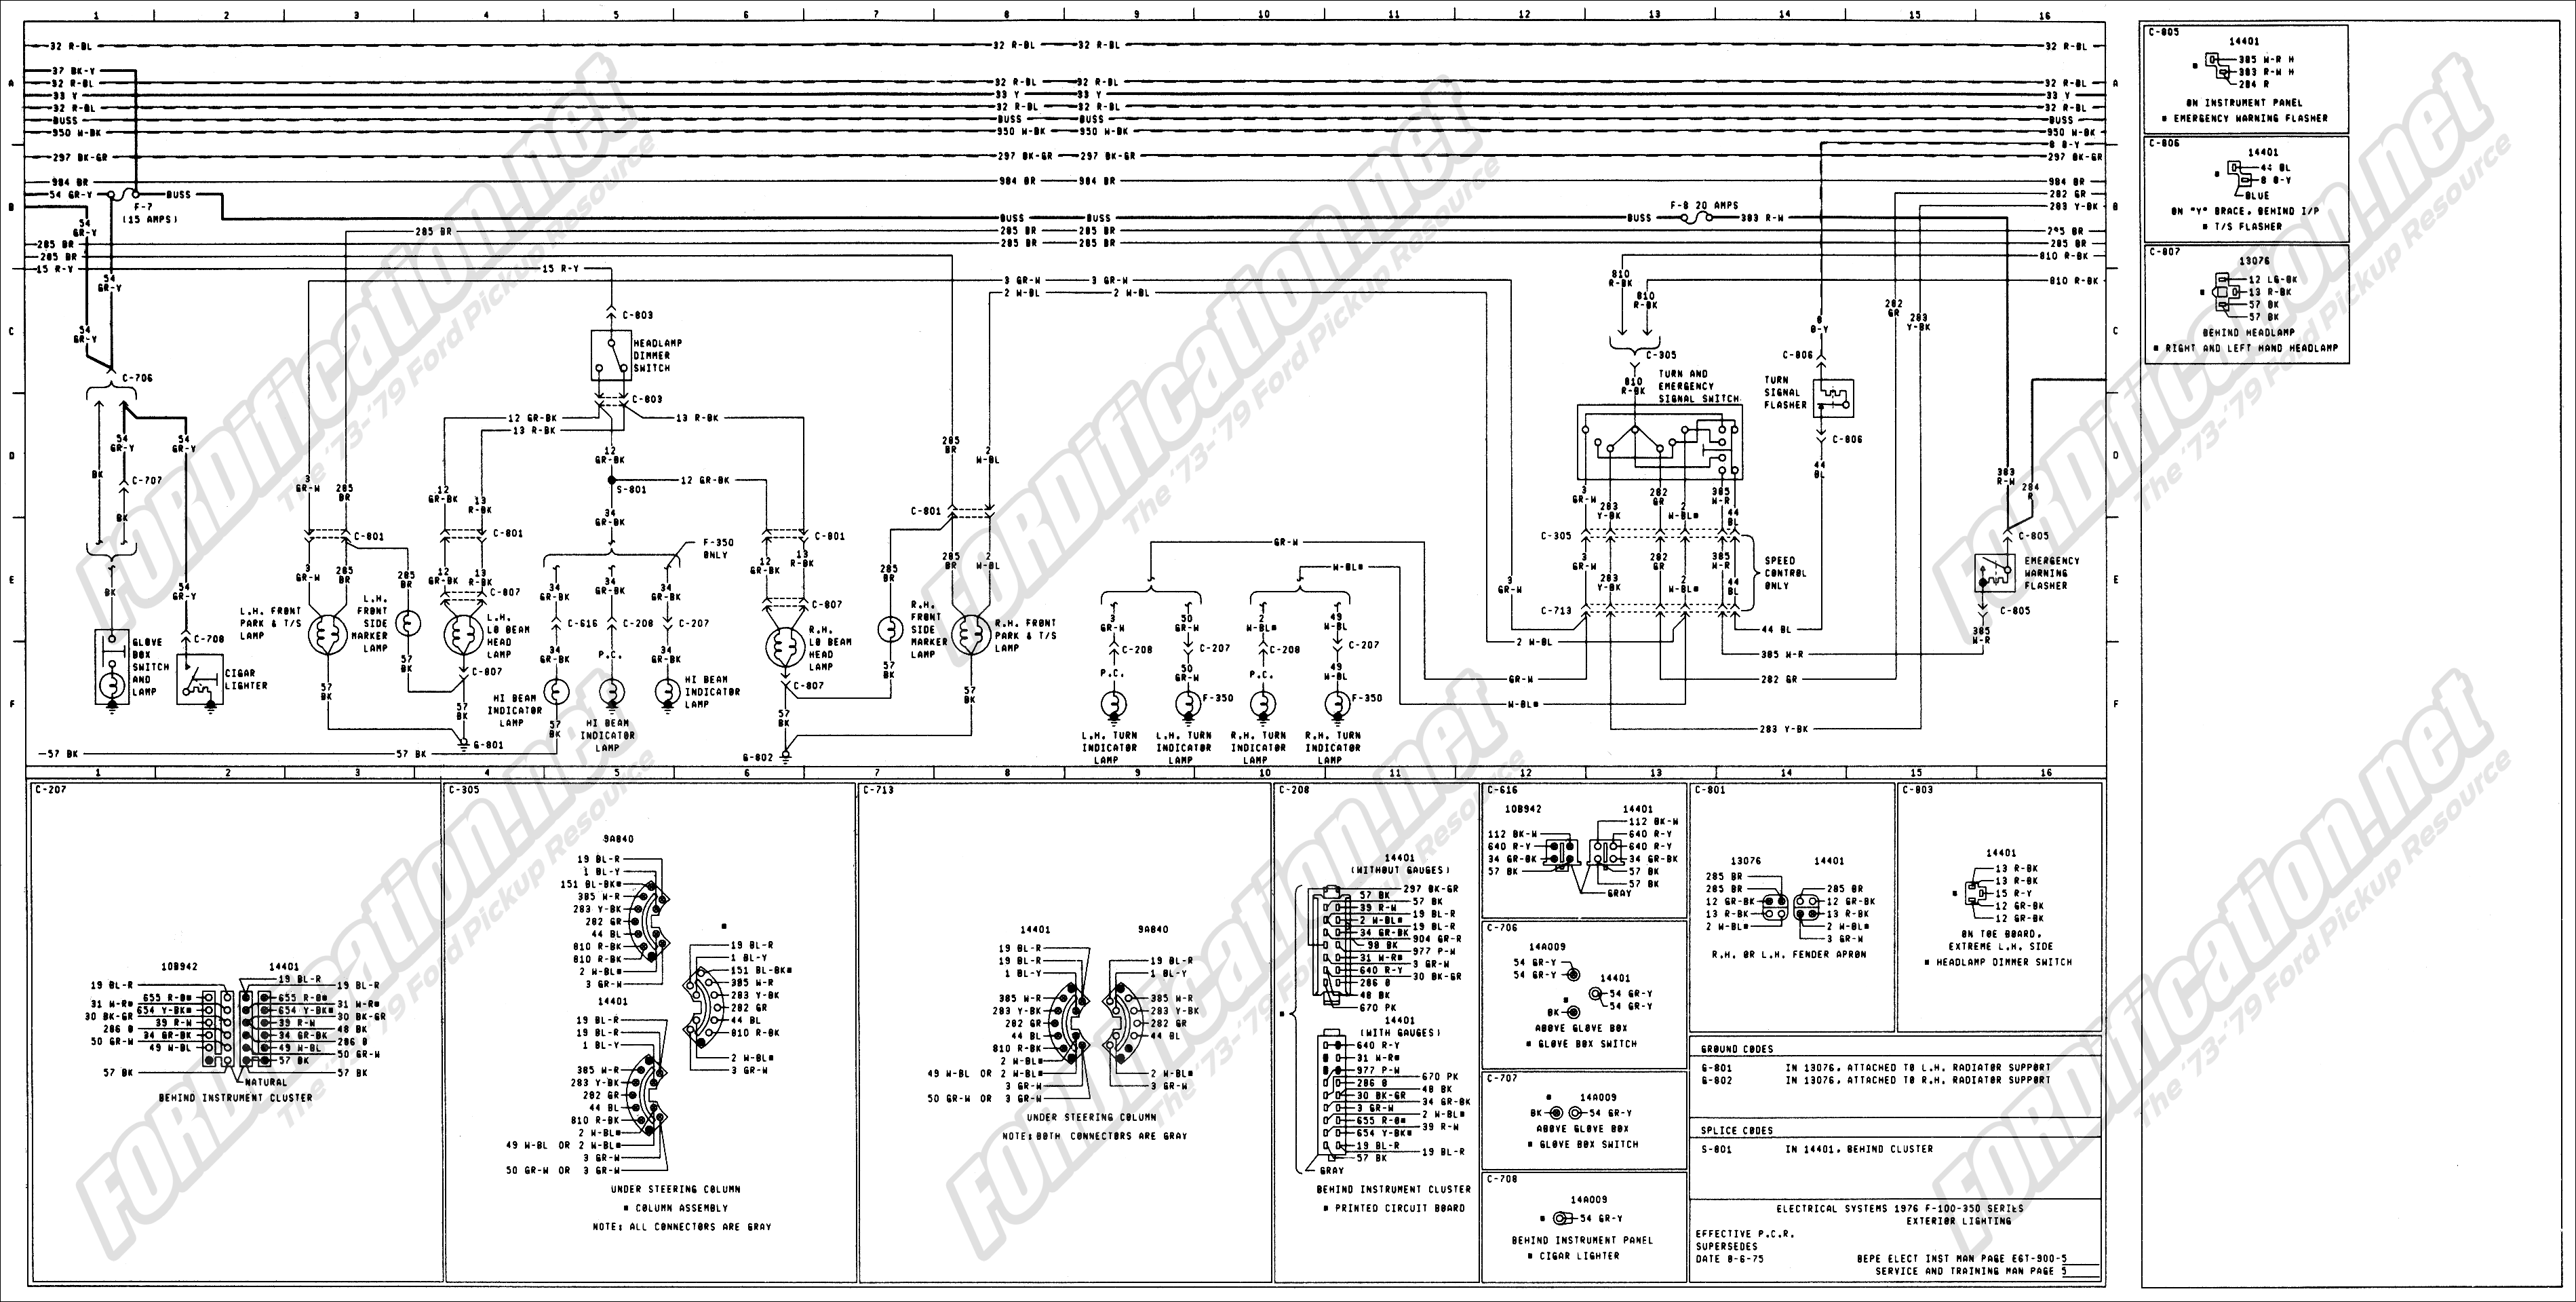 1973 1979 Ford Truck Wiring Diagrams Schematics Diagram For Pickups